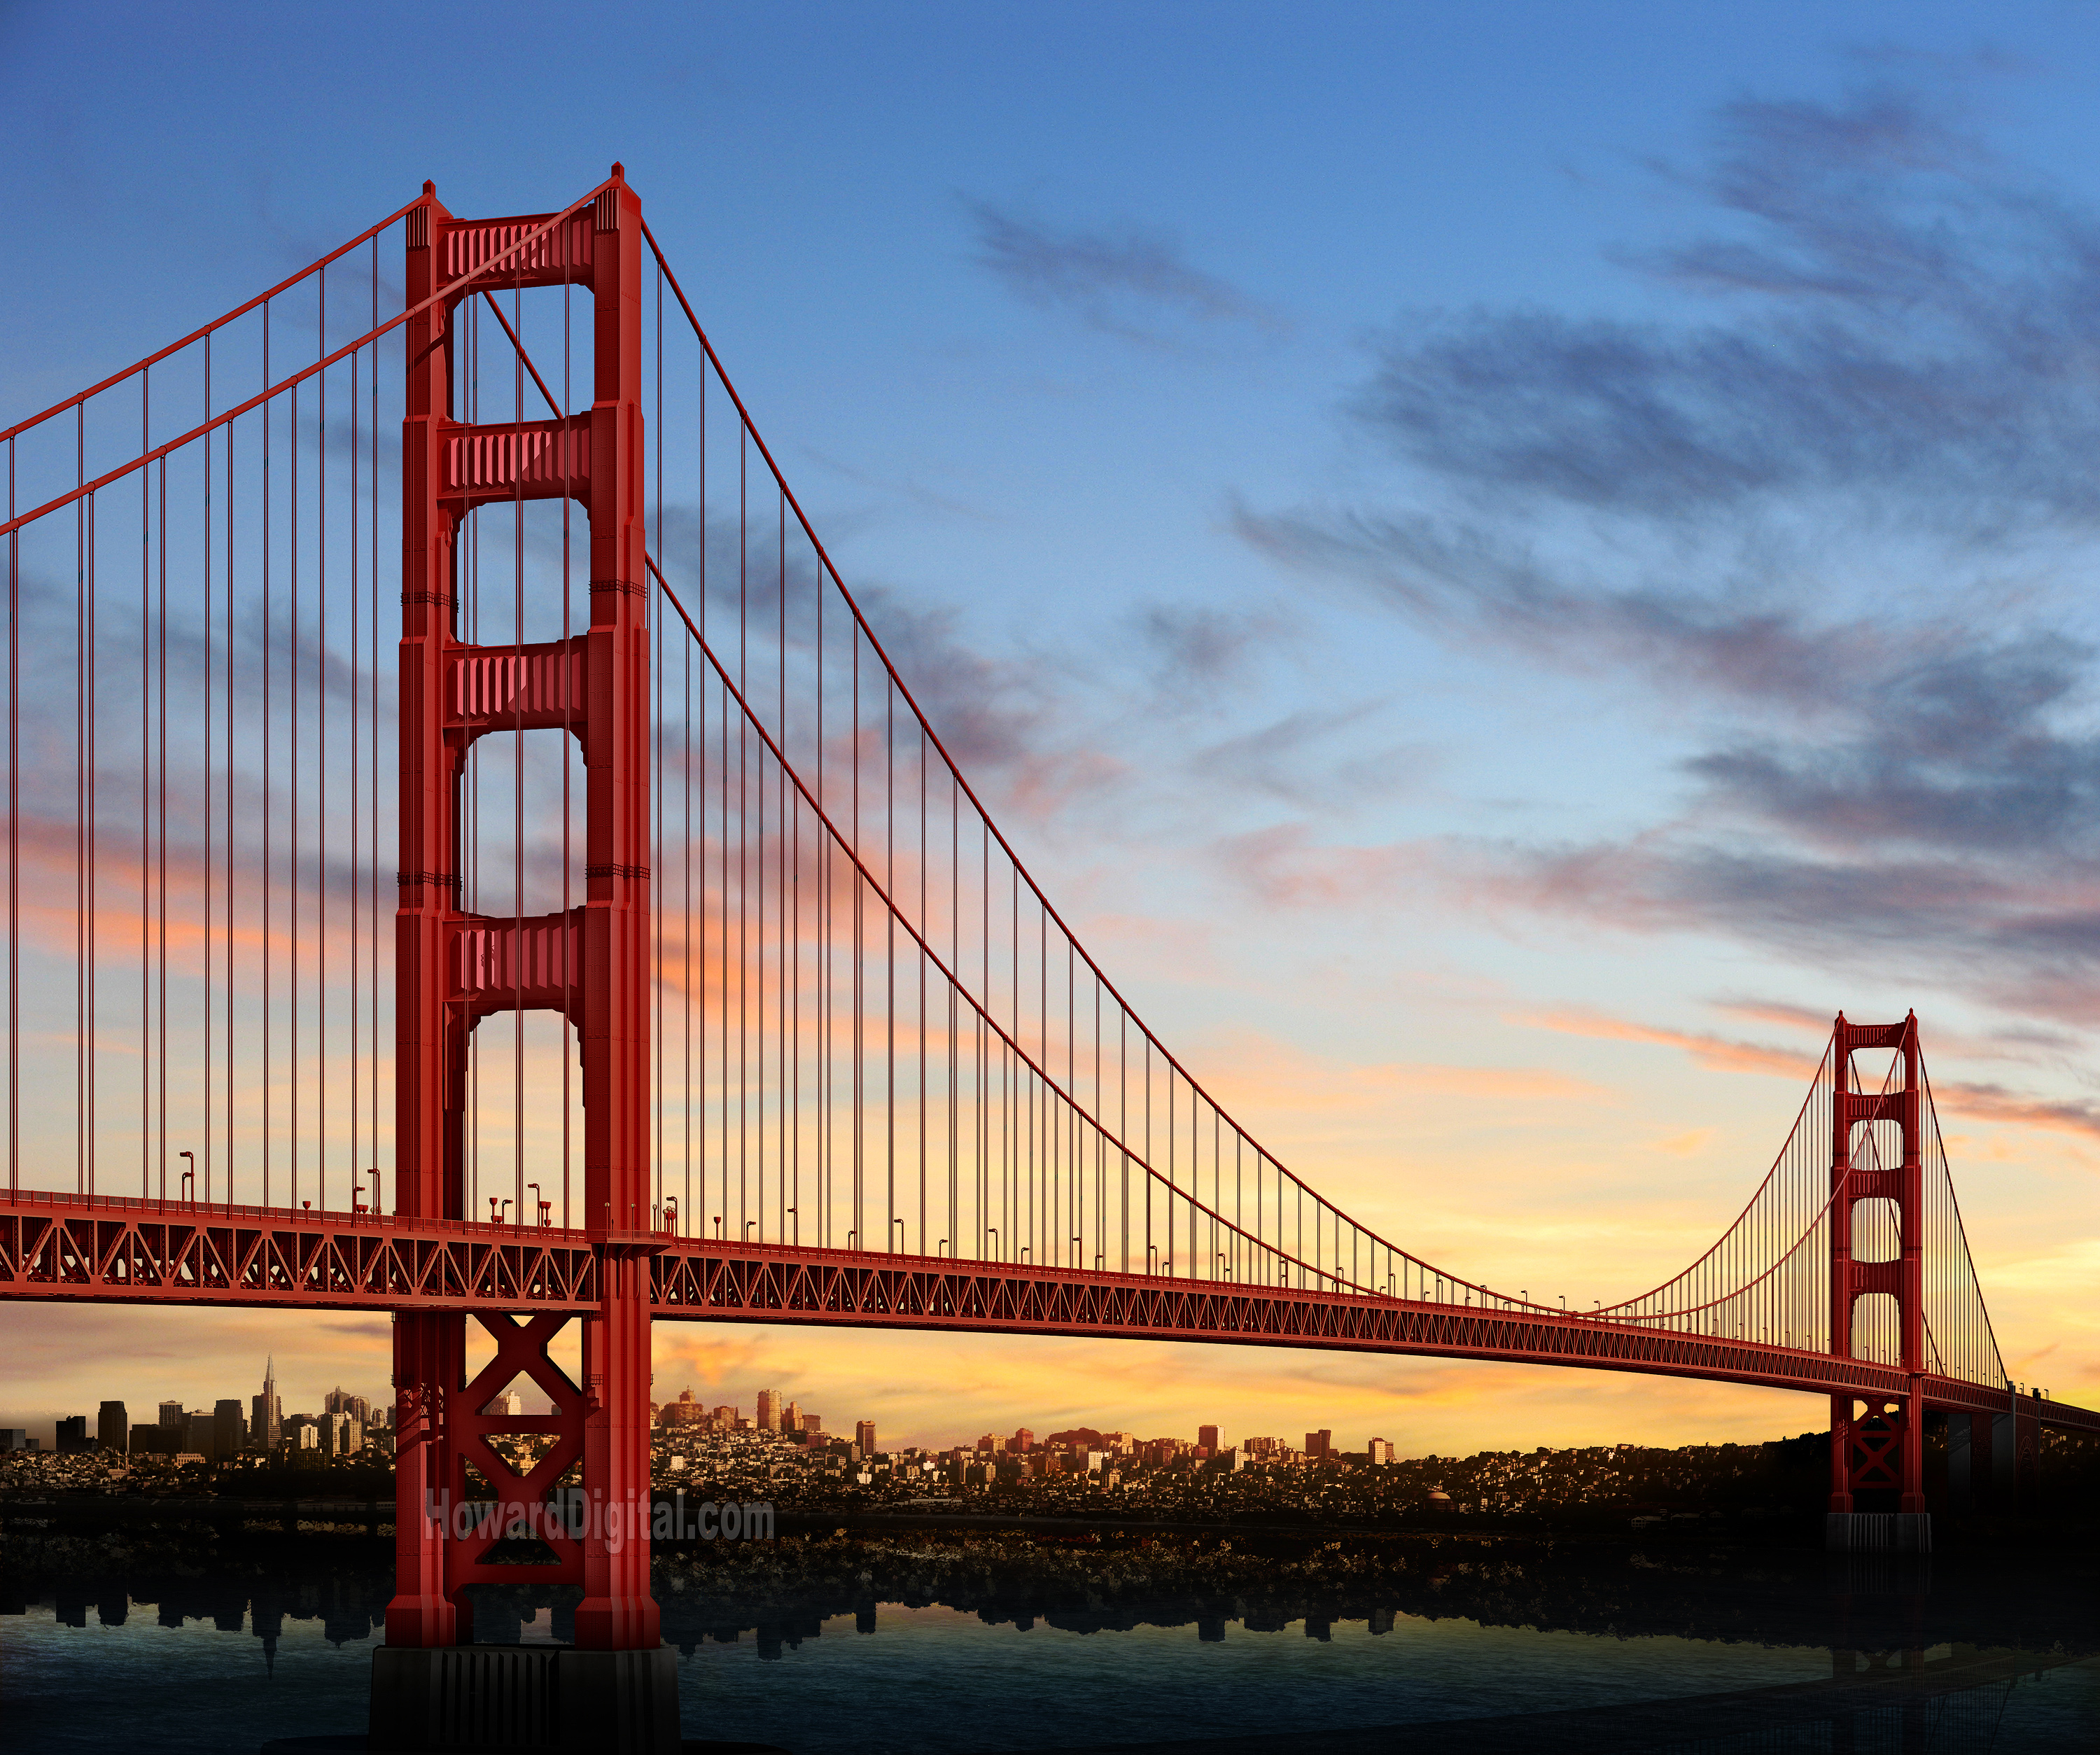 Famous Civil Engineering Structures Why The Golden Gate Br...